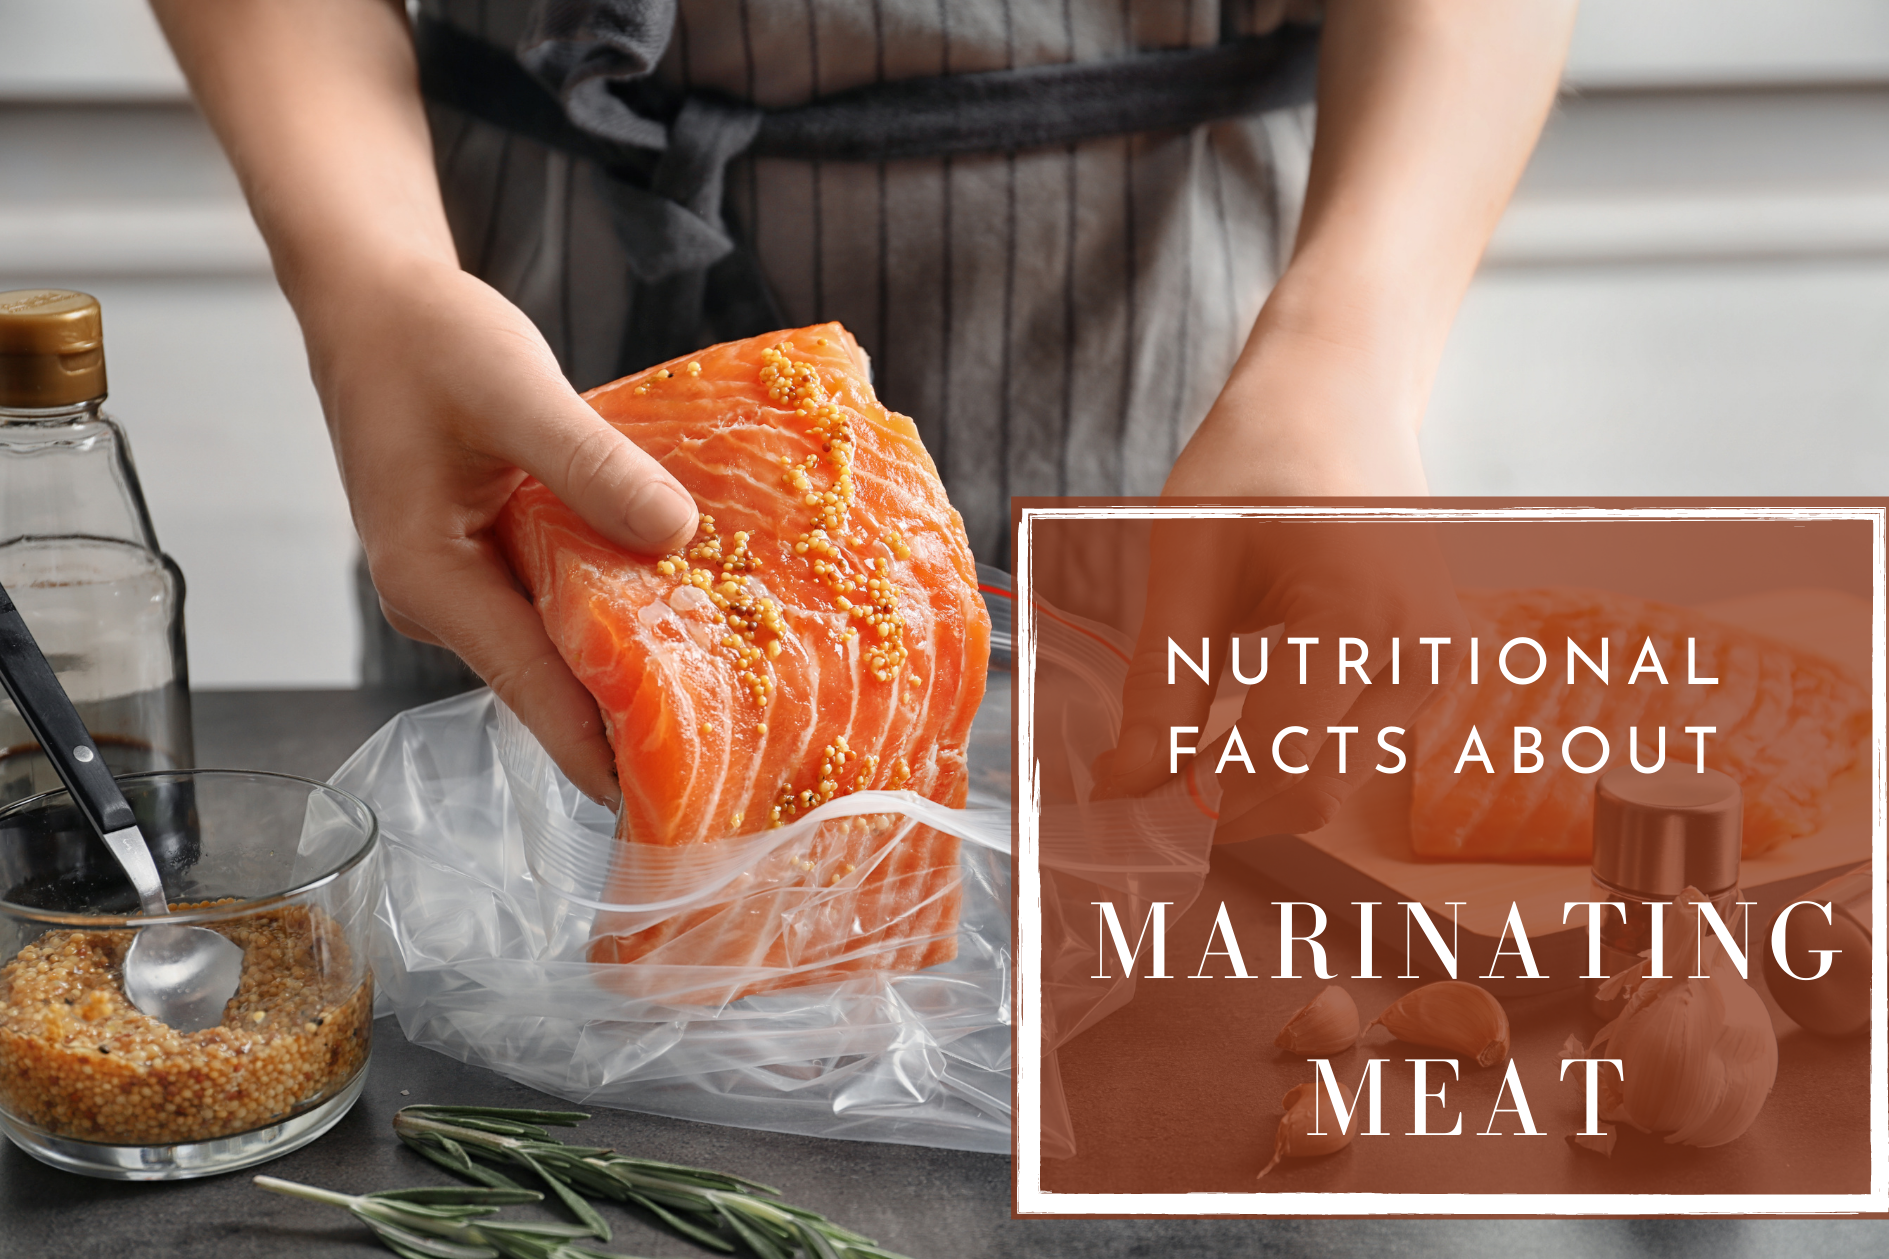 Nutritional Facts About Marinating Meat